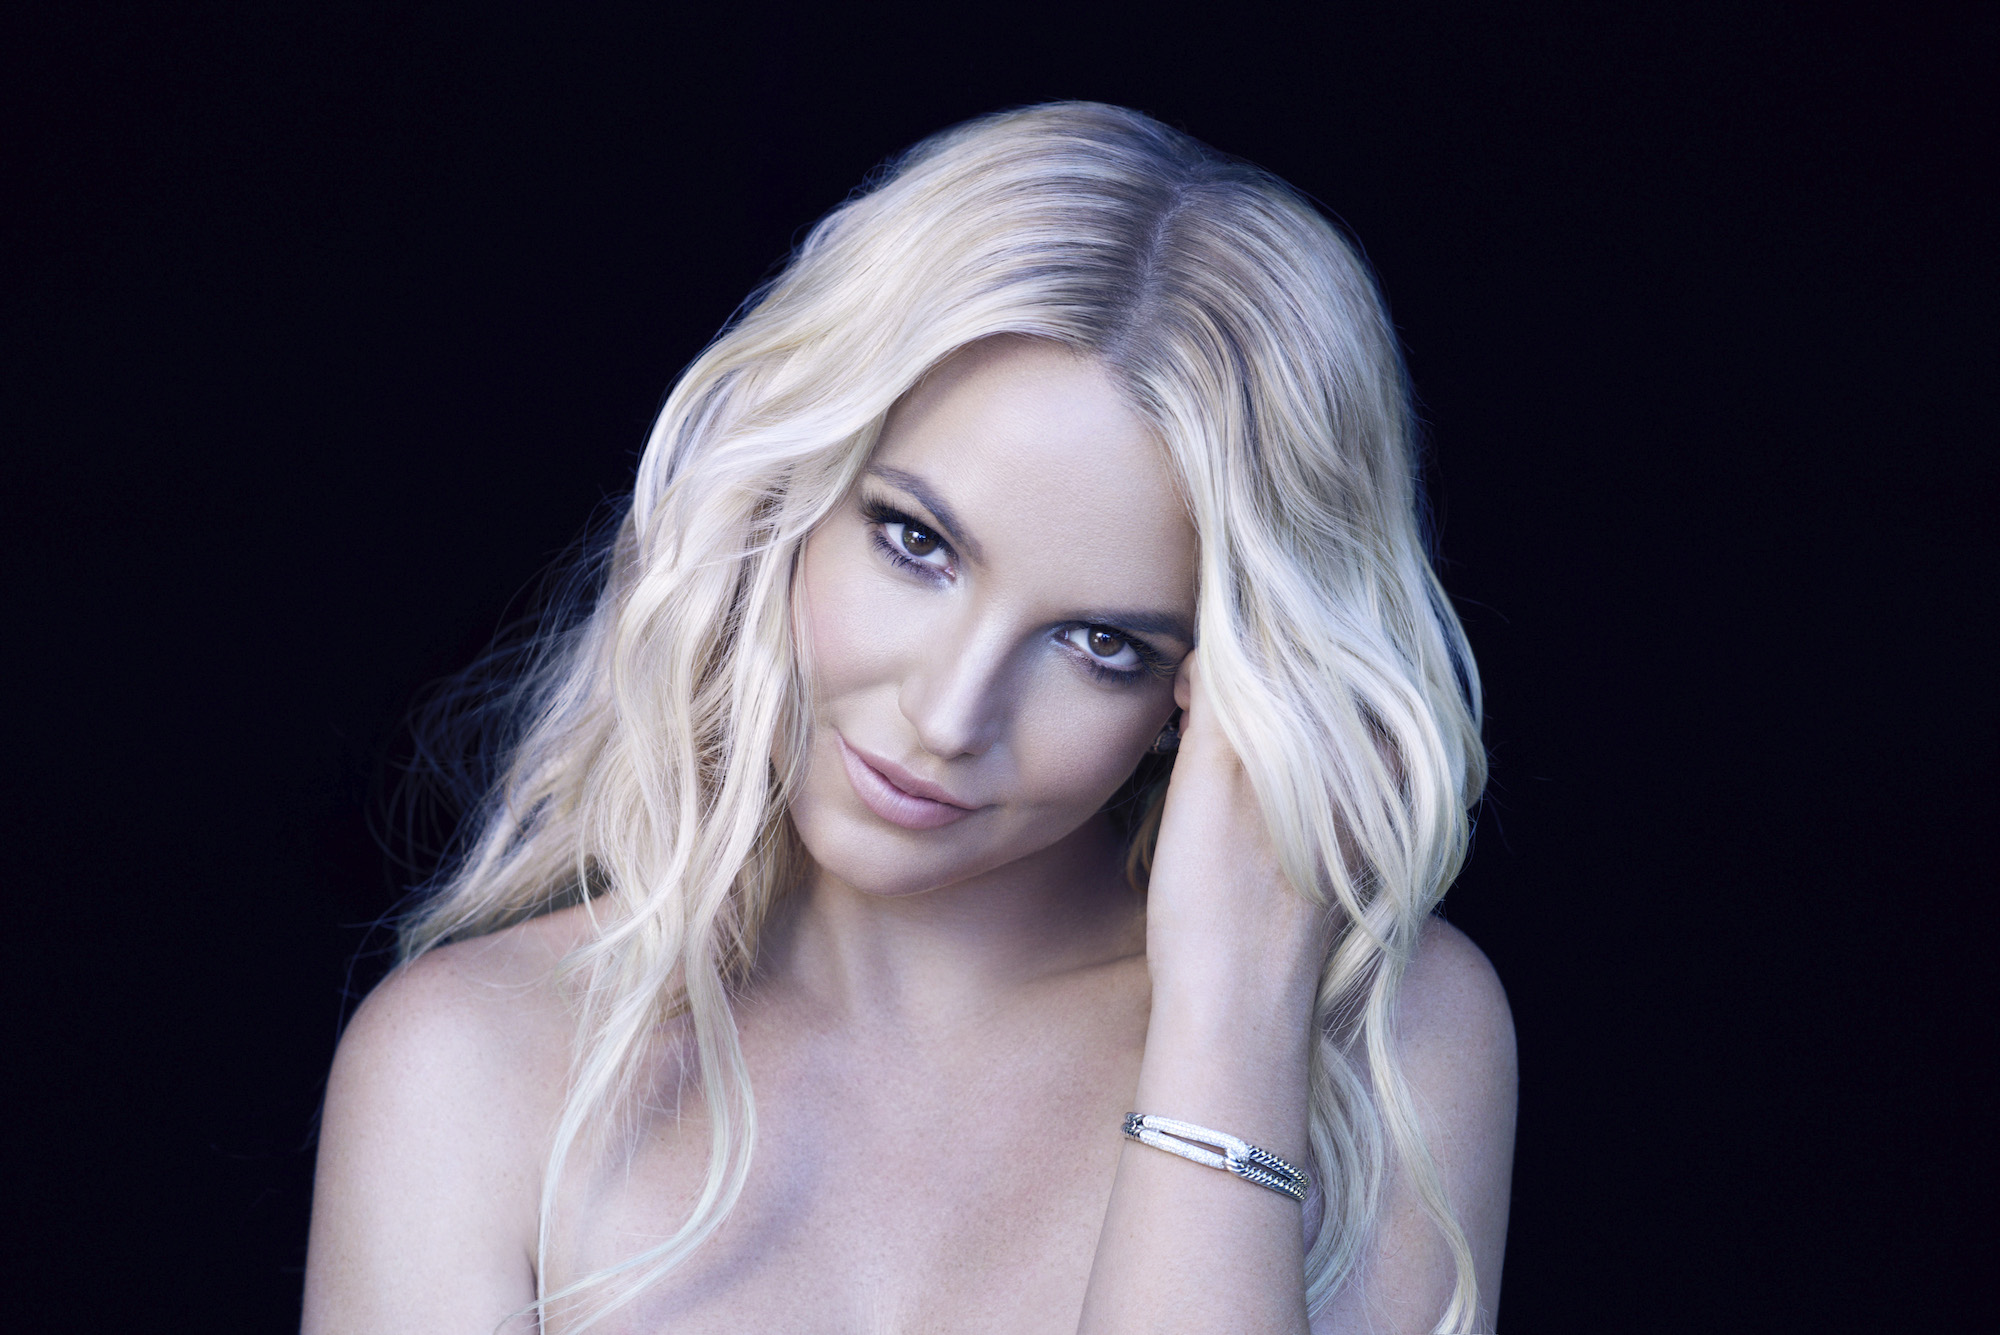 Britney Spears Said She 'Cried for 2 Weeks' After Watching 'Framing Britney Spears' Documentary